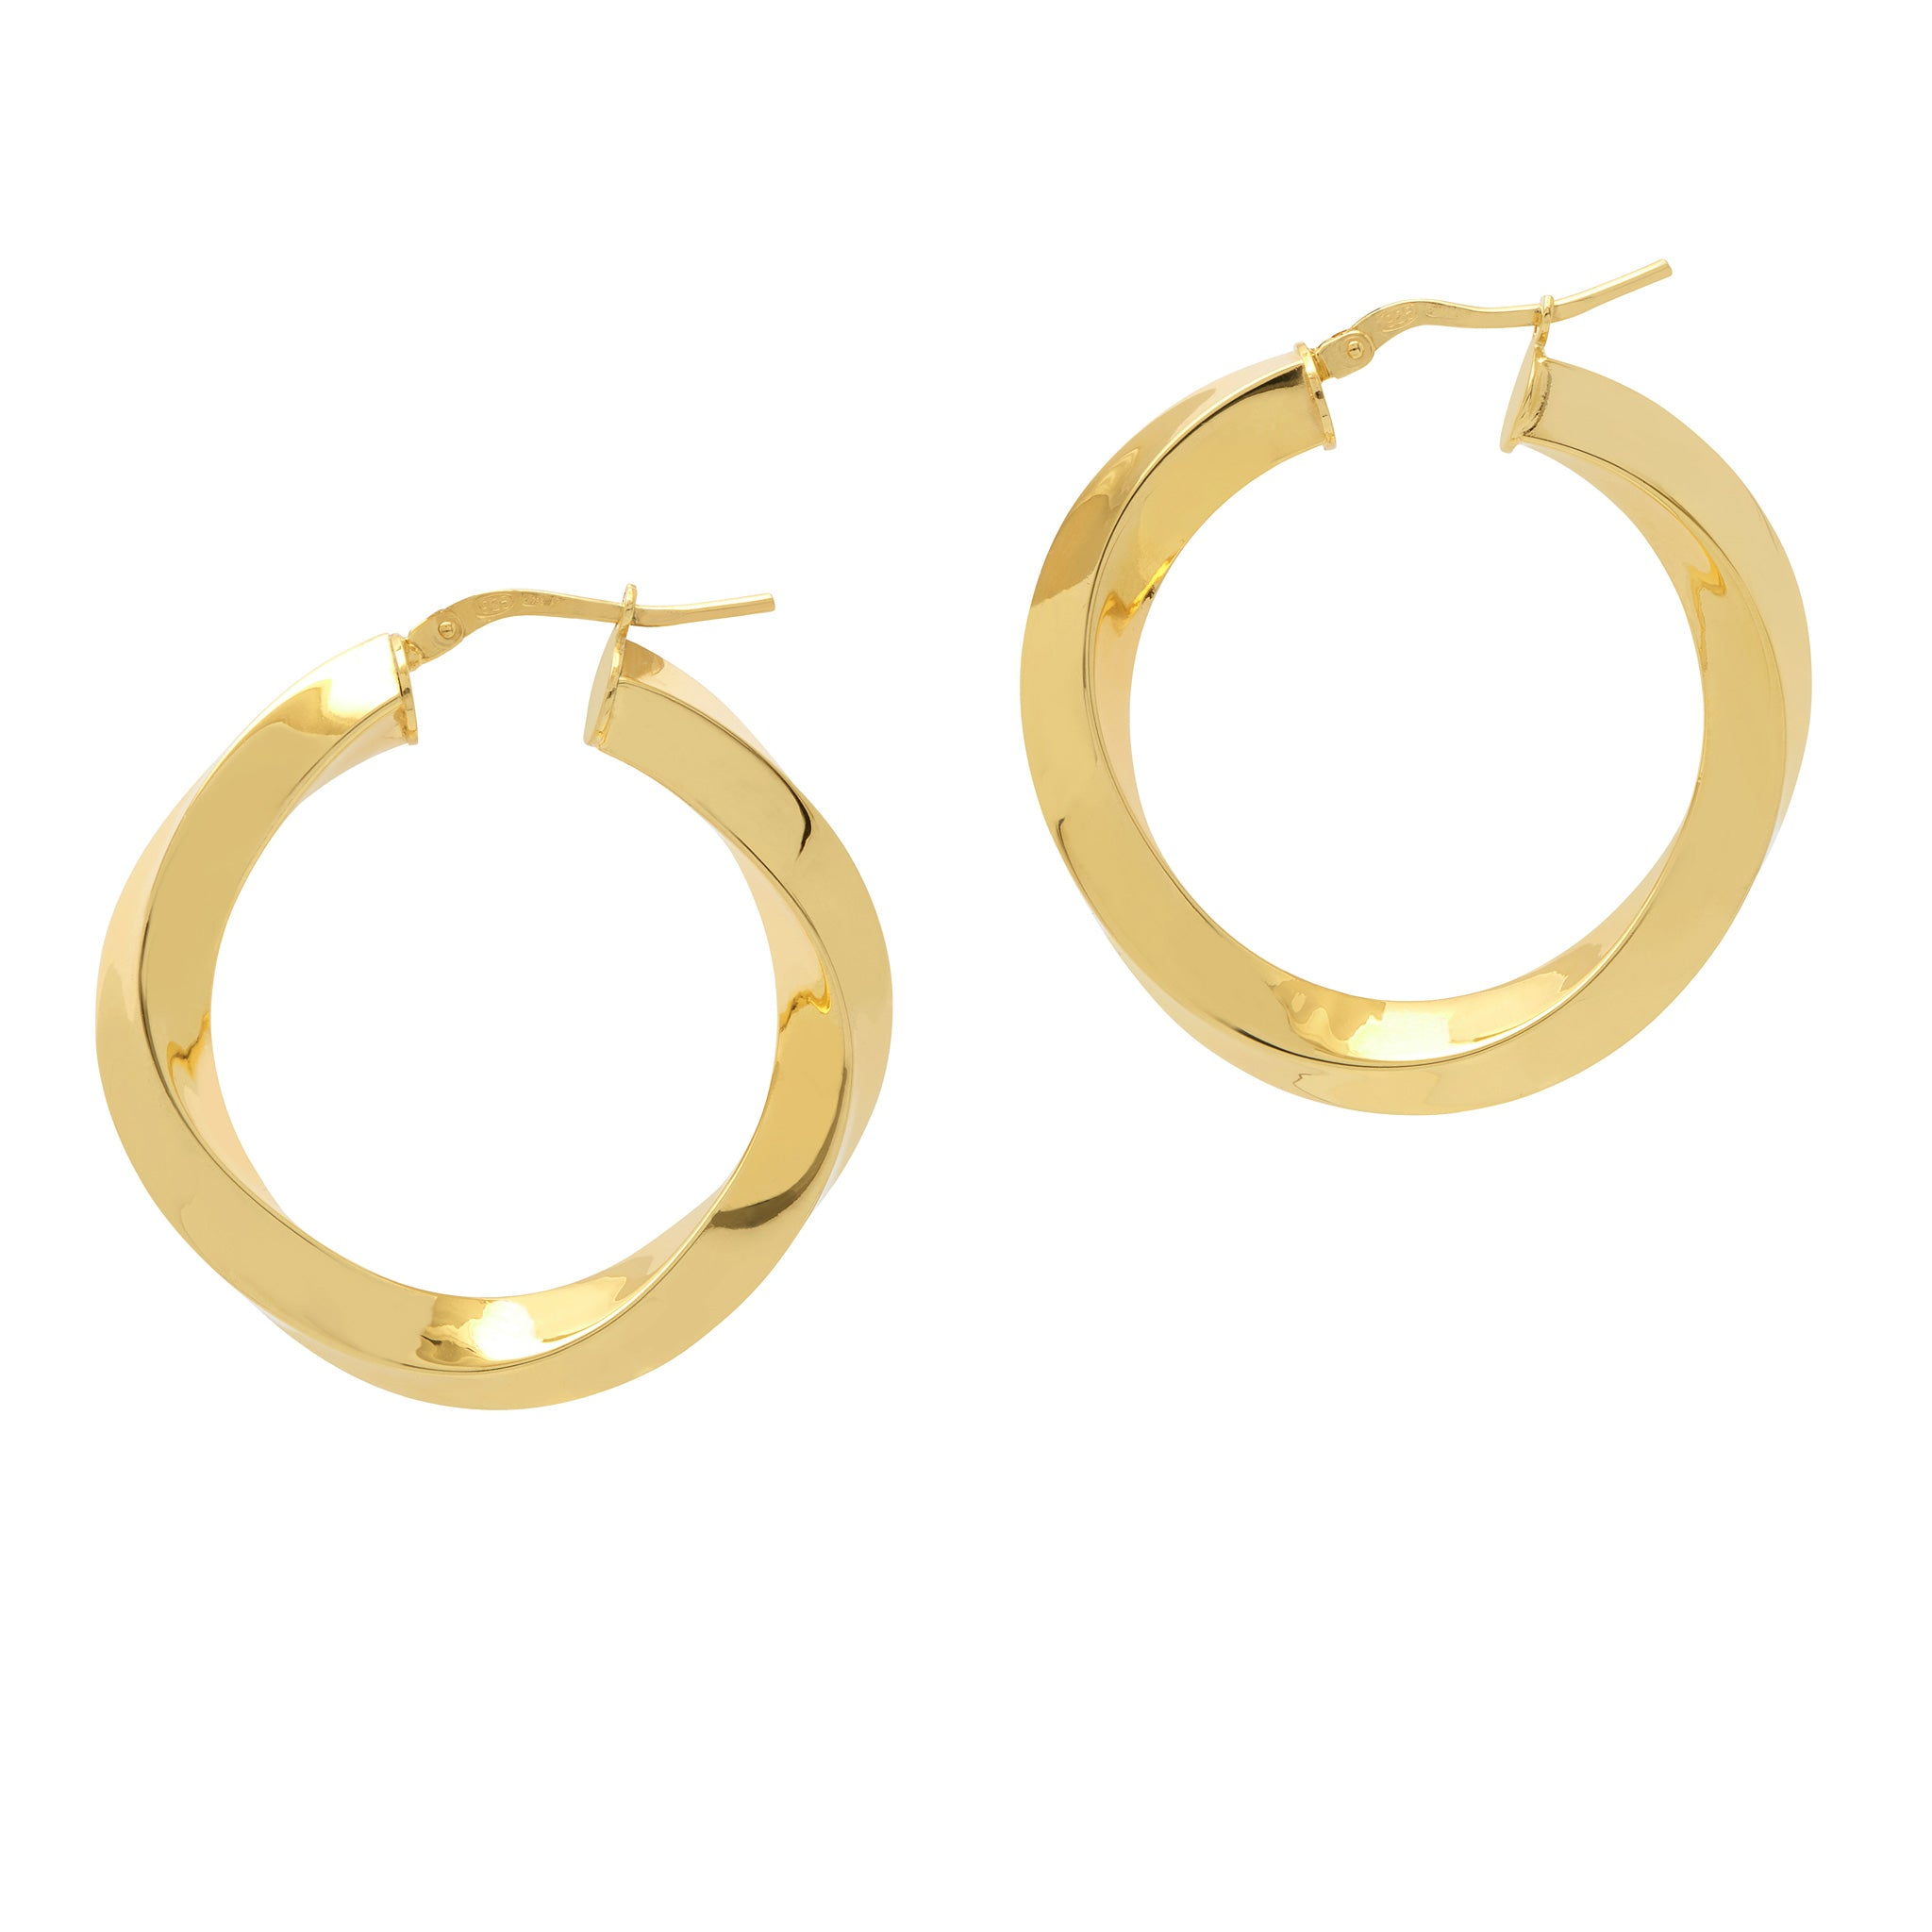 La SWIRL TWISTS - Gold - The Hoop Station 925 Sterling Silver Hoop Earrings Gold Huggies